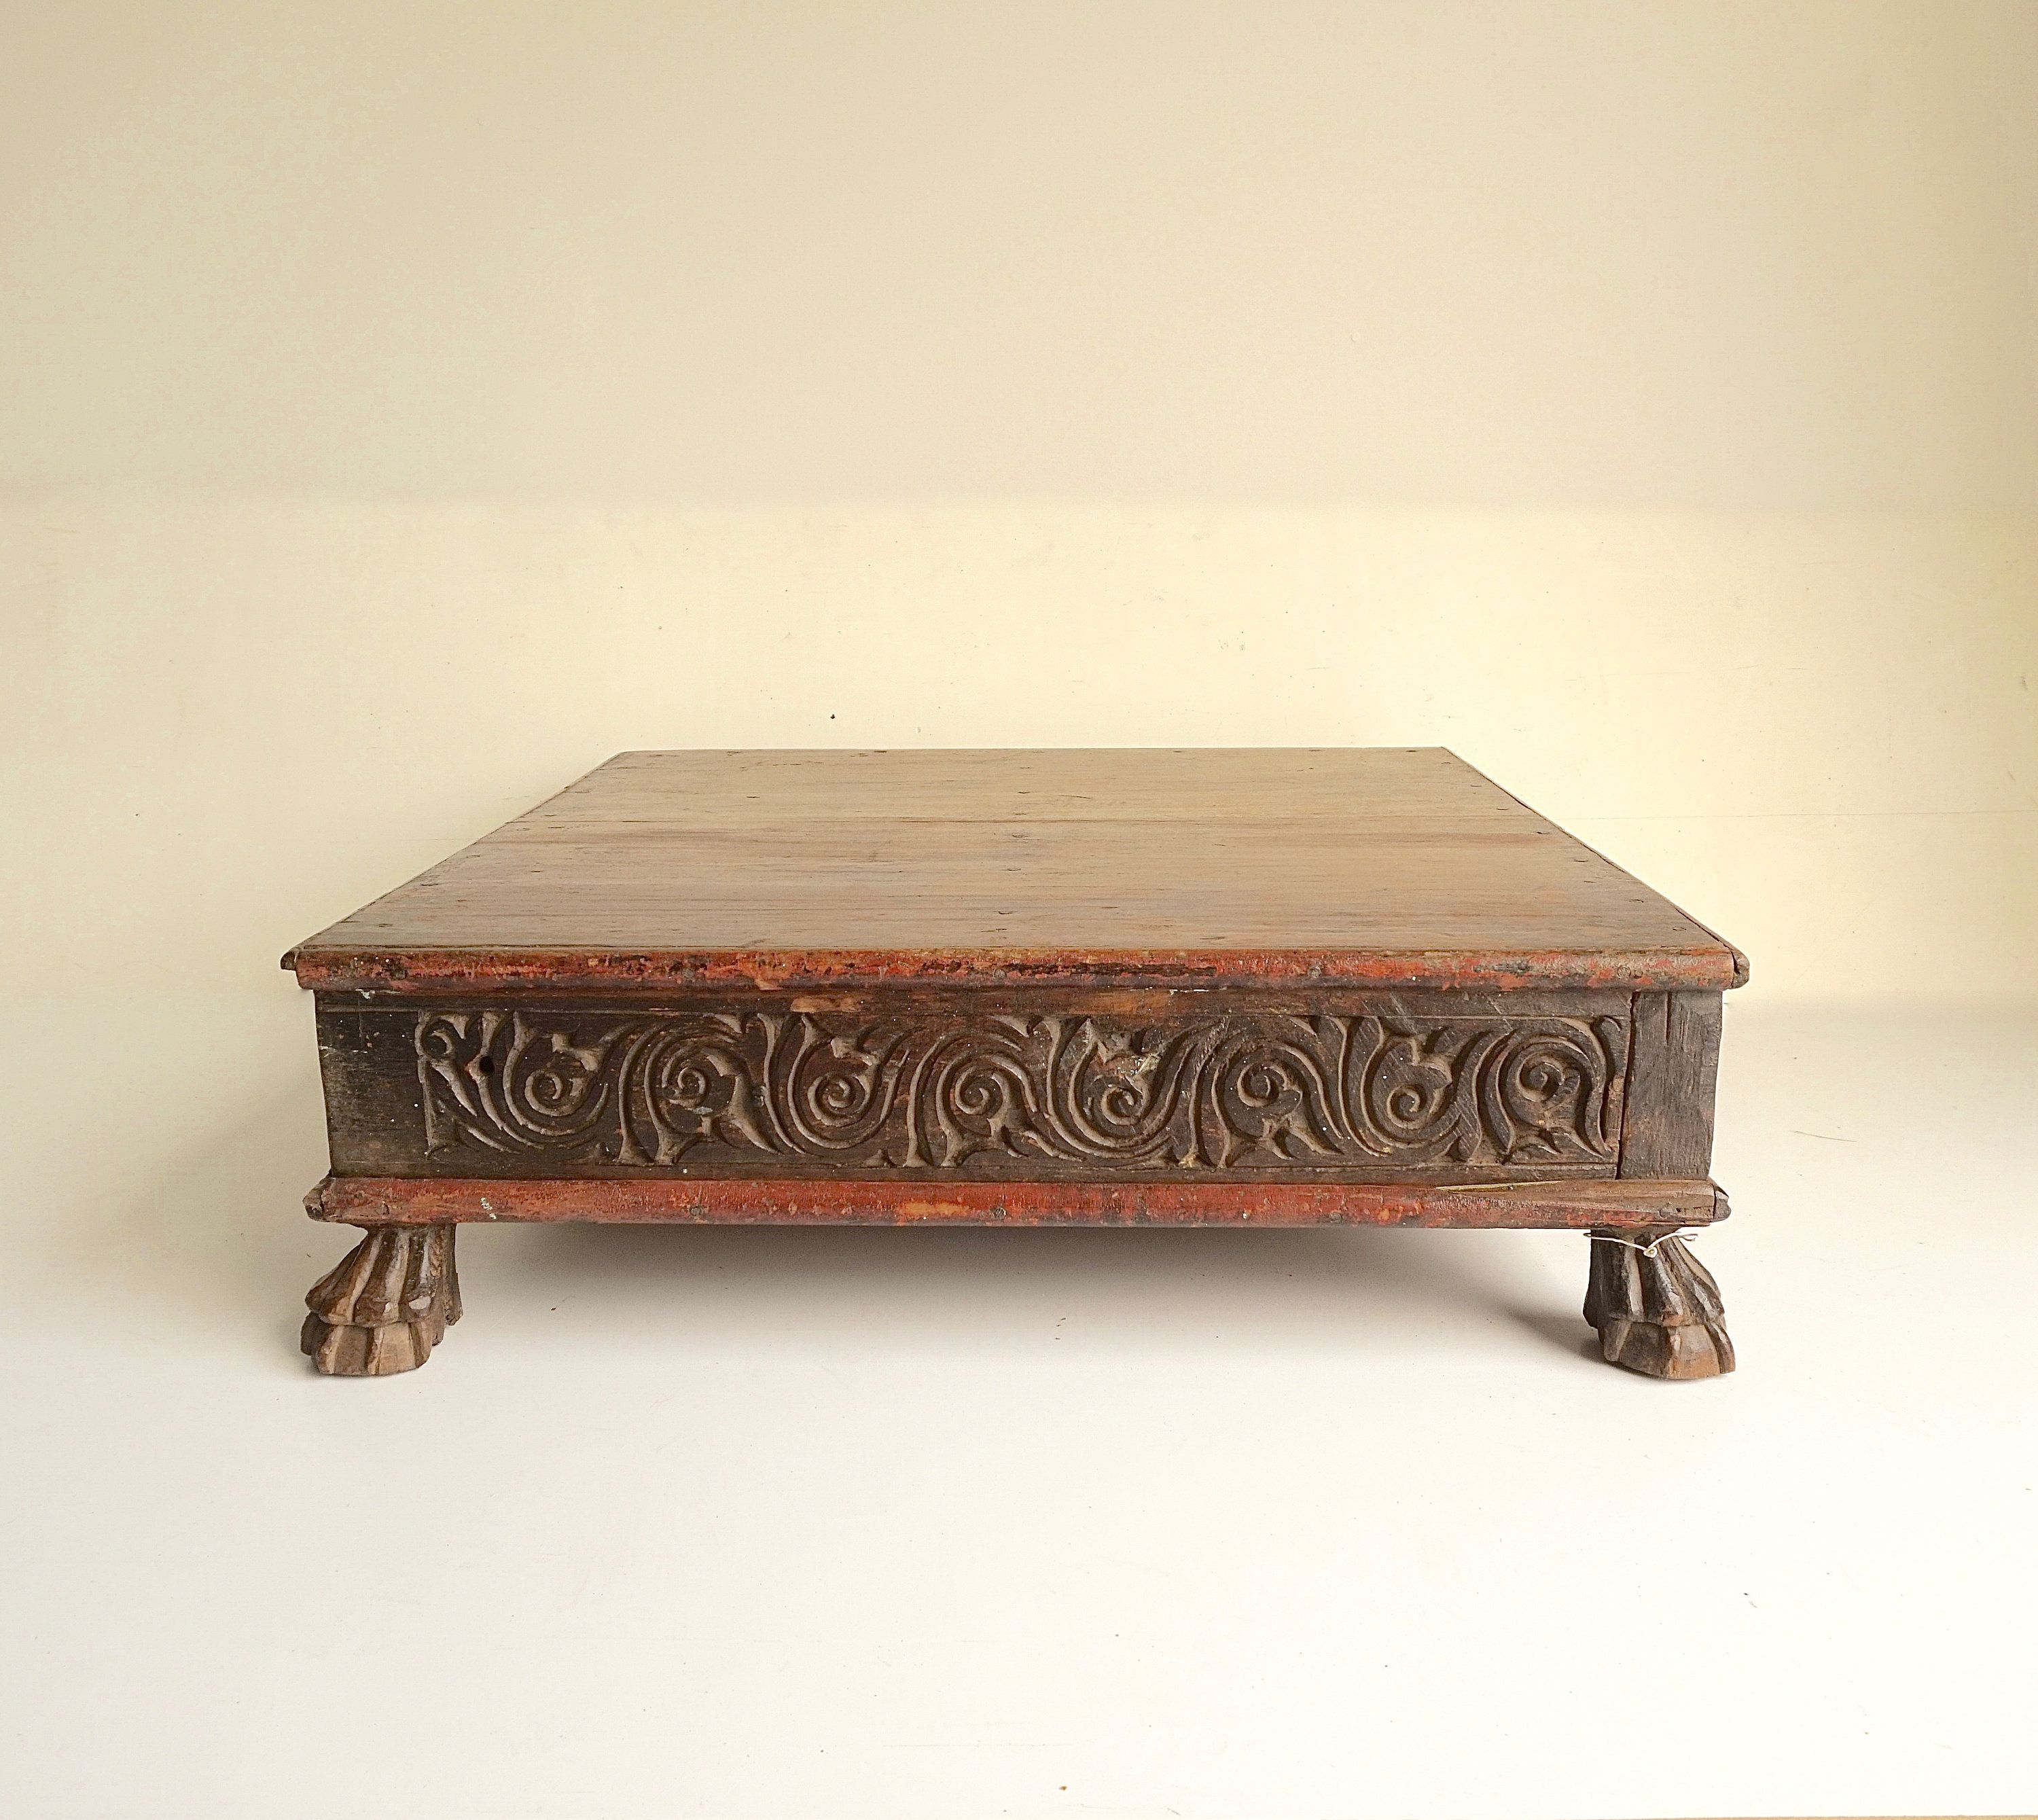 Furniture Wooden Low Table Coffee Table Bajot Low Tables